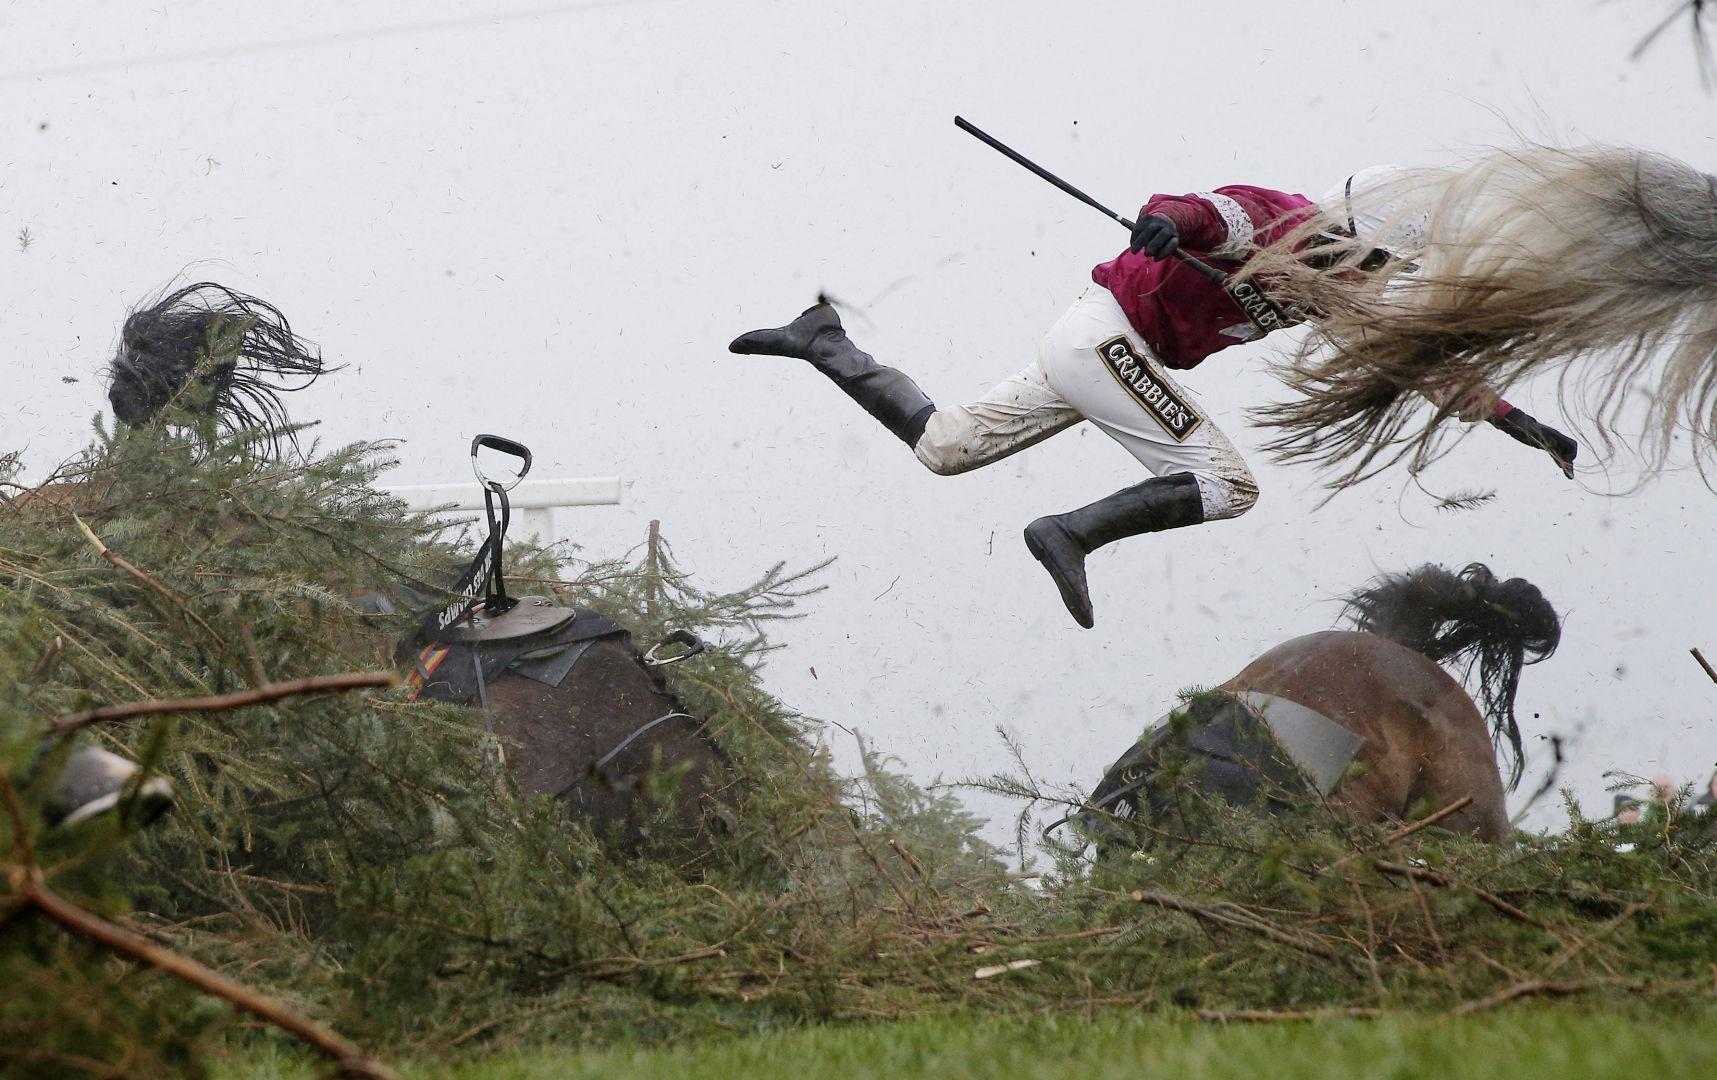 Grand National Steeplechase, Tom Jenkins, UK, The World Press Photo Contest